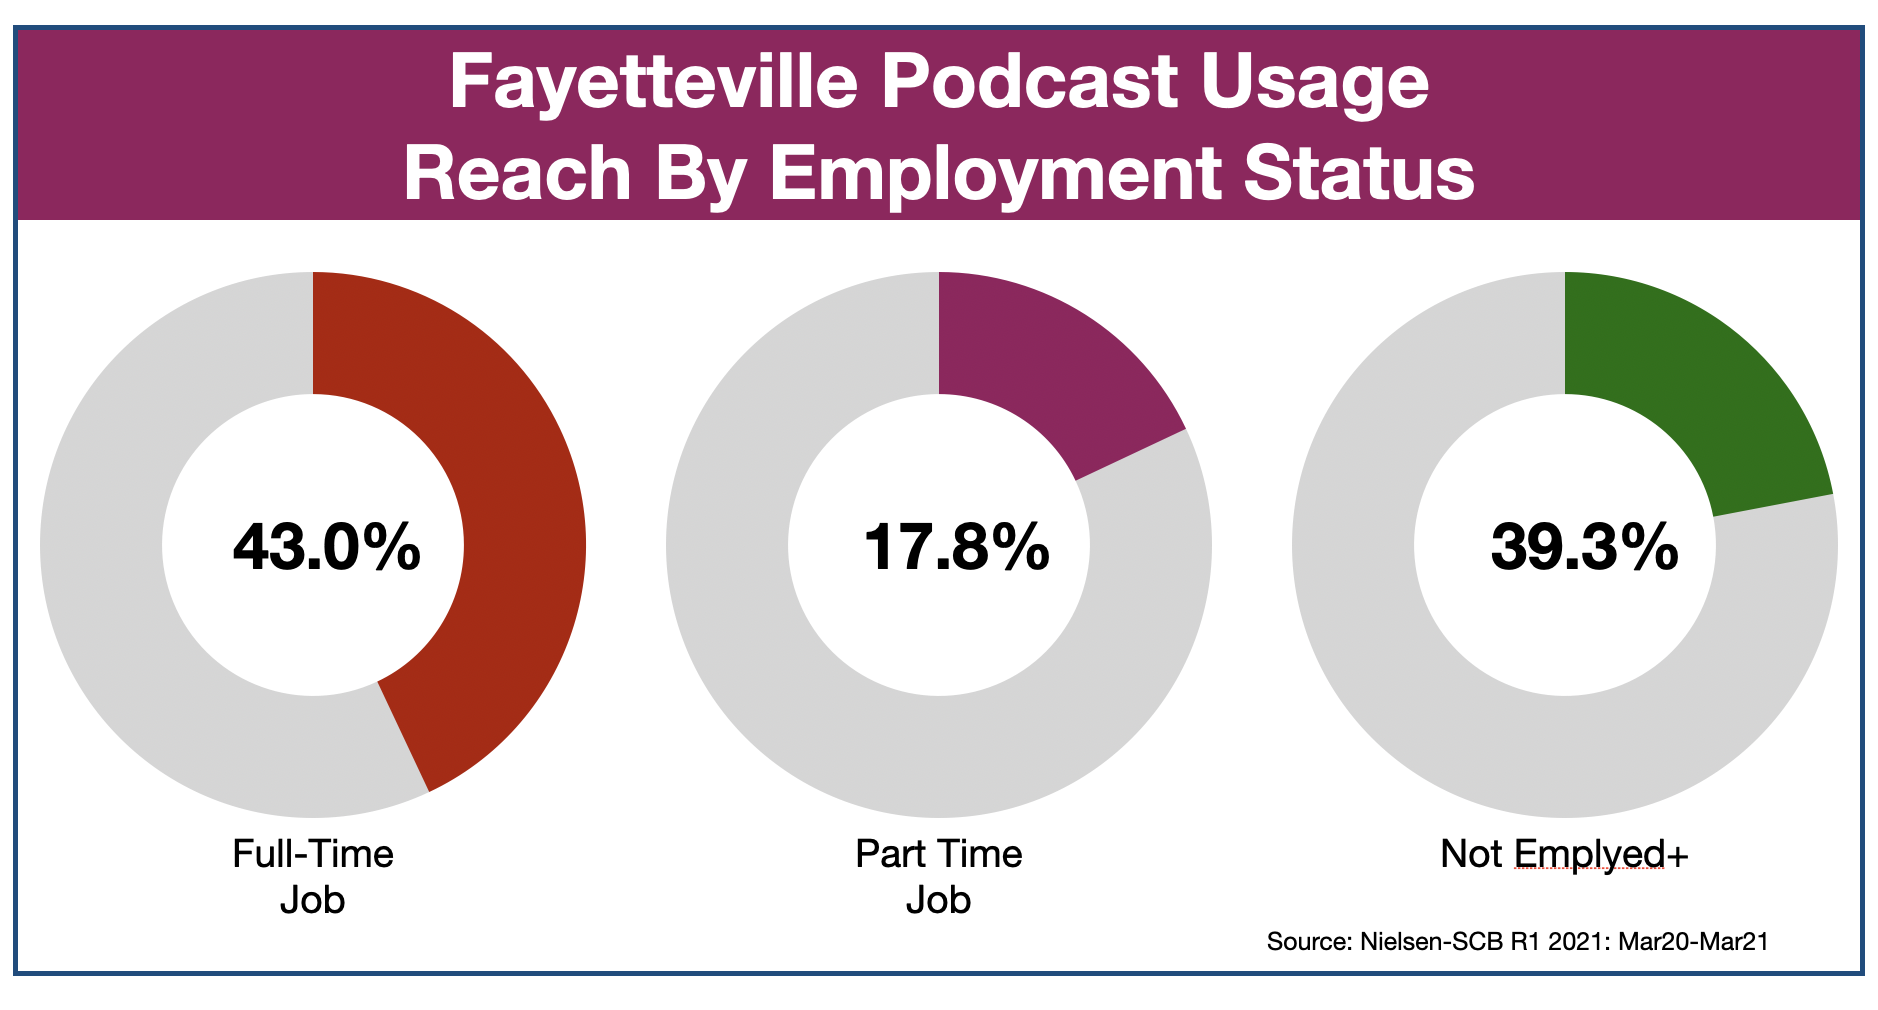 Podcast Advertising In Fayetteville Employment